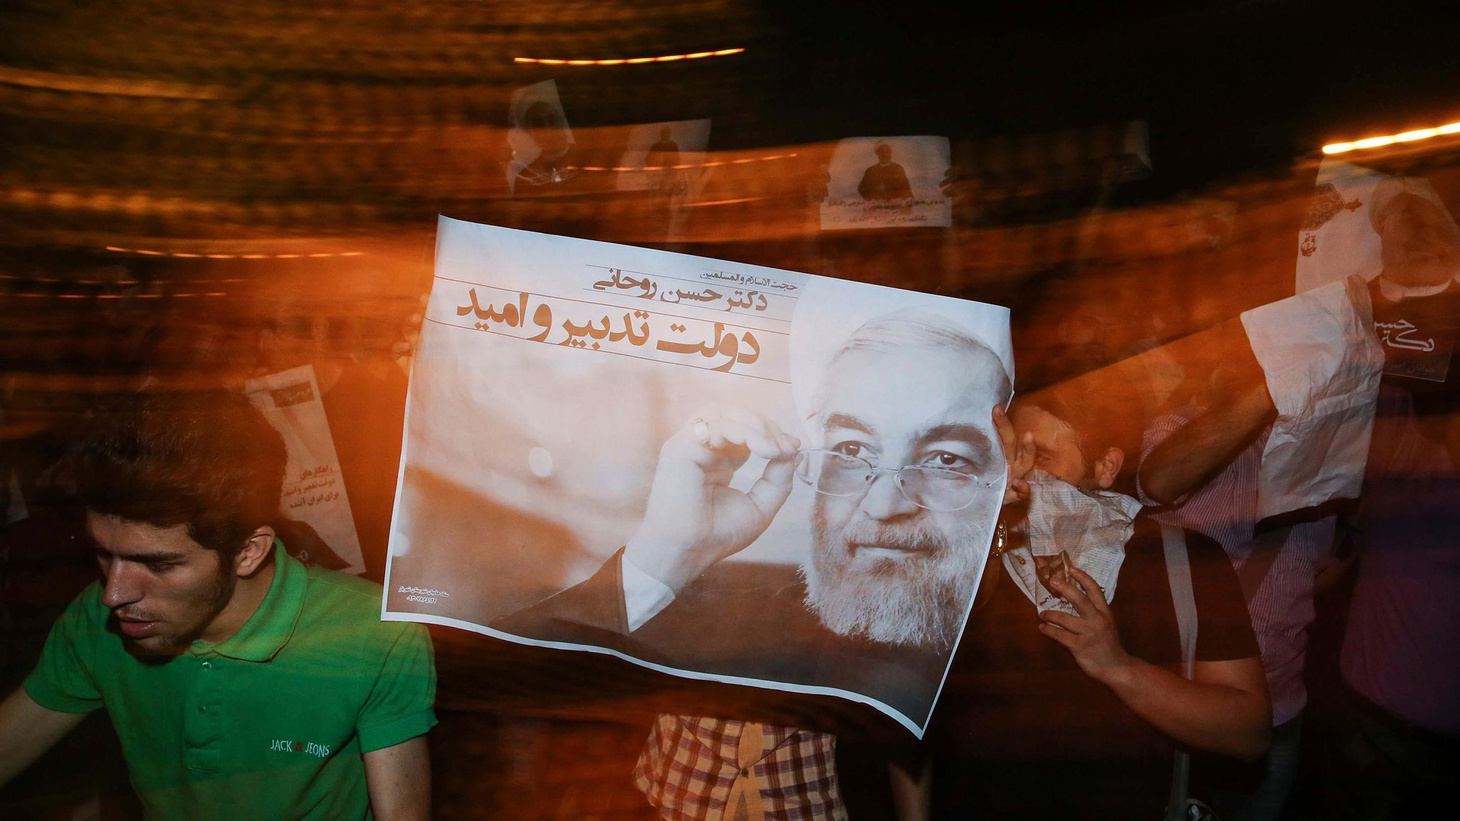 After 8 years of Ahmadinejad, Iran's clerical leaders have tried minimize controversy in tomorrow's presidential election. But political opposition may rise to the surface.